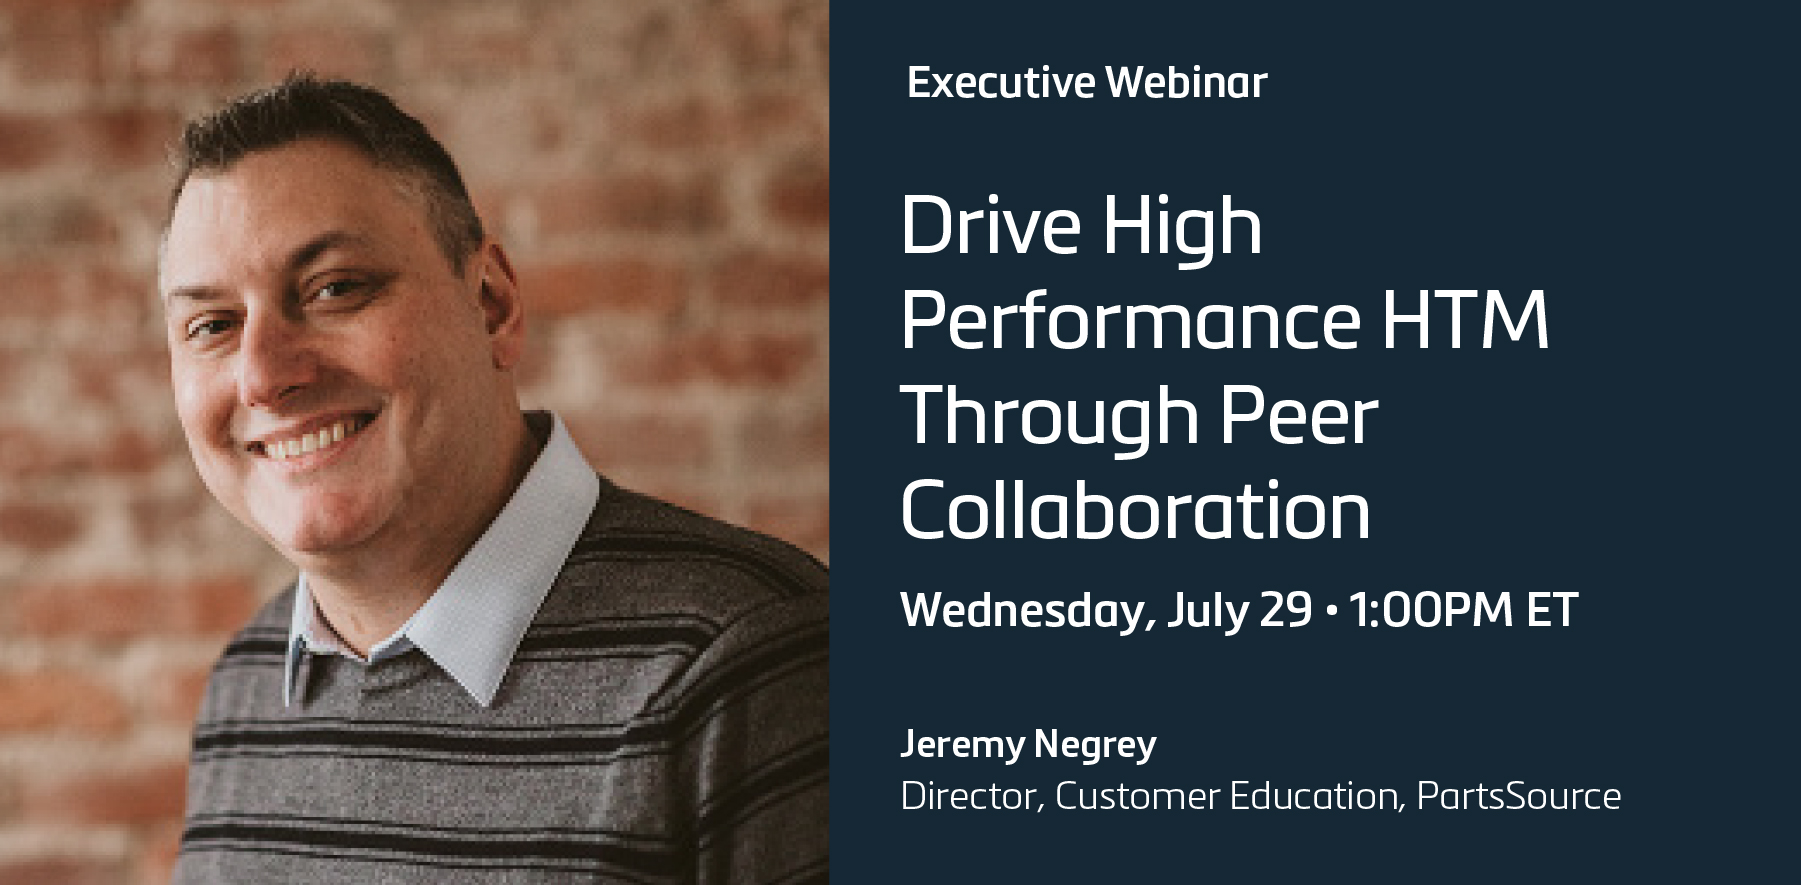 Drive High Performance HTM Through Peer Collaboration